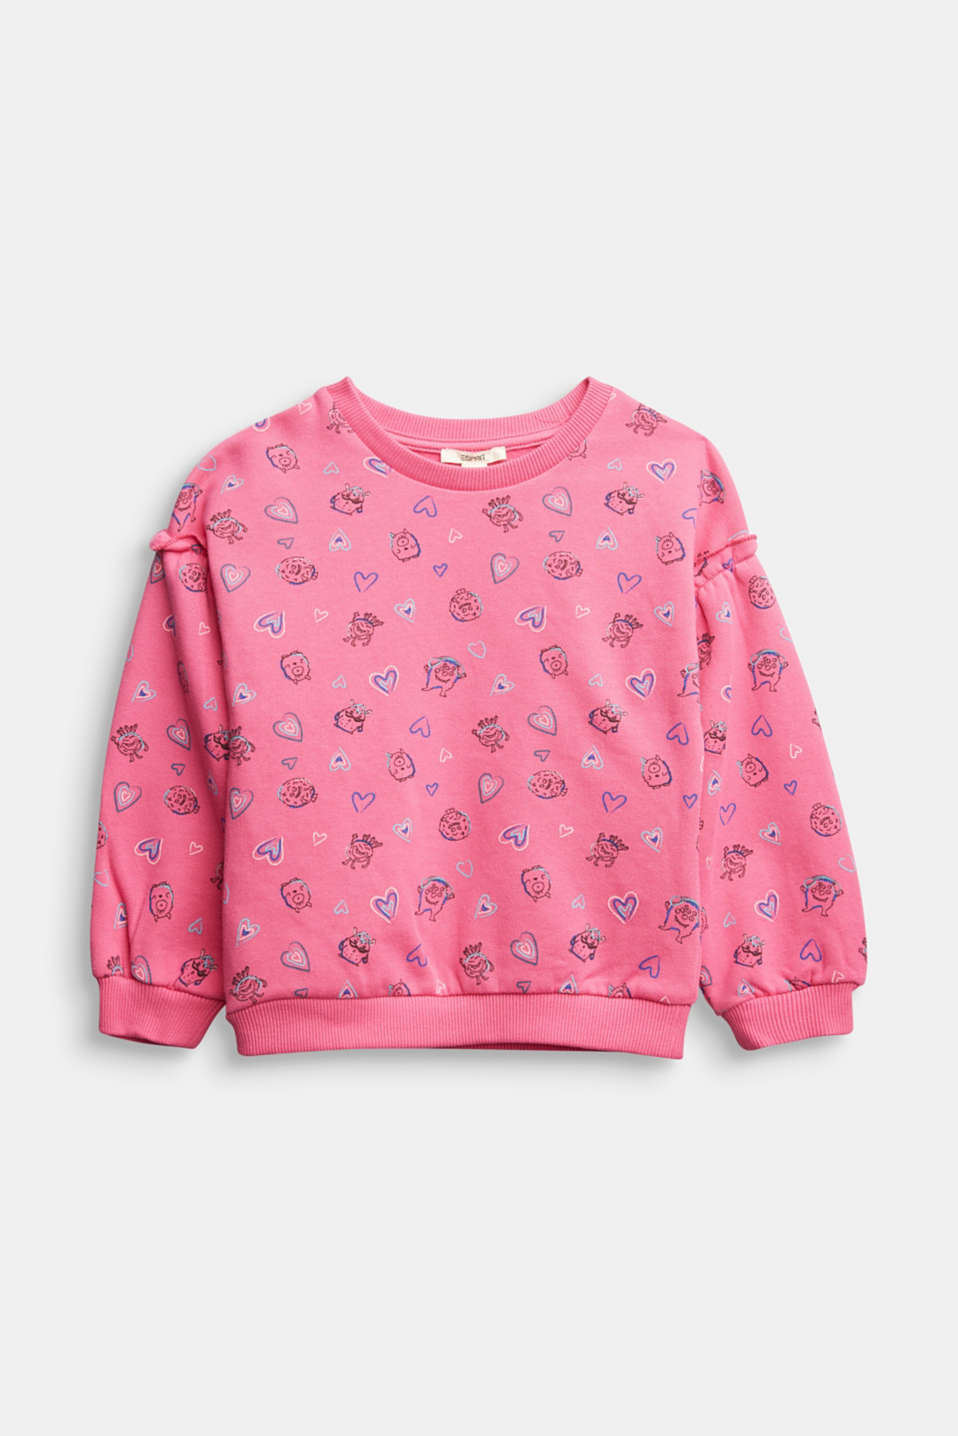 Esprit - Sweatshirt met print all-over, 100% katoen